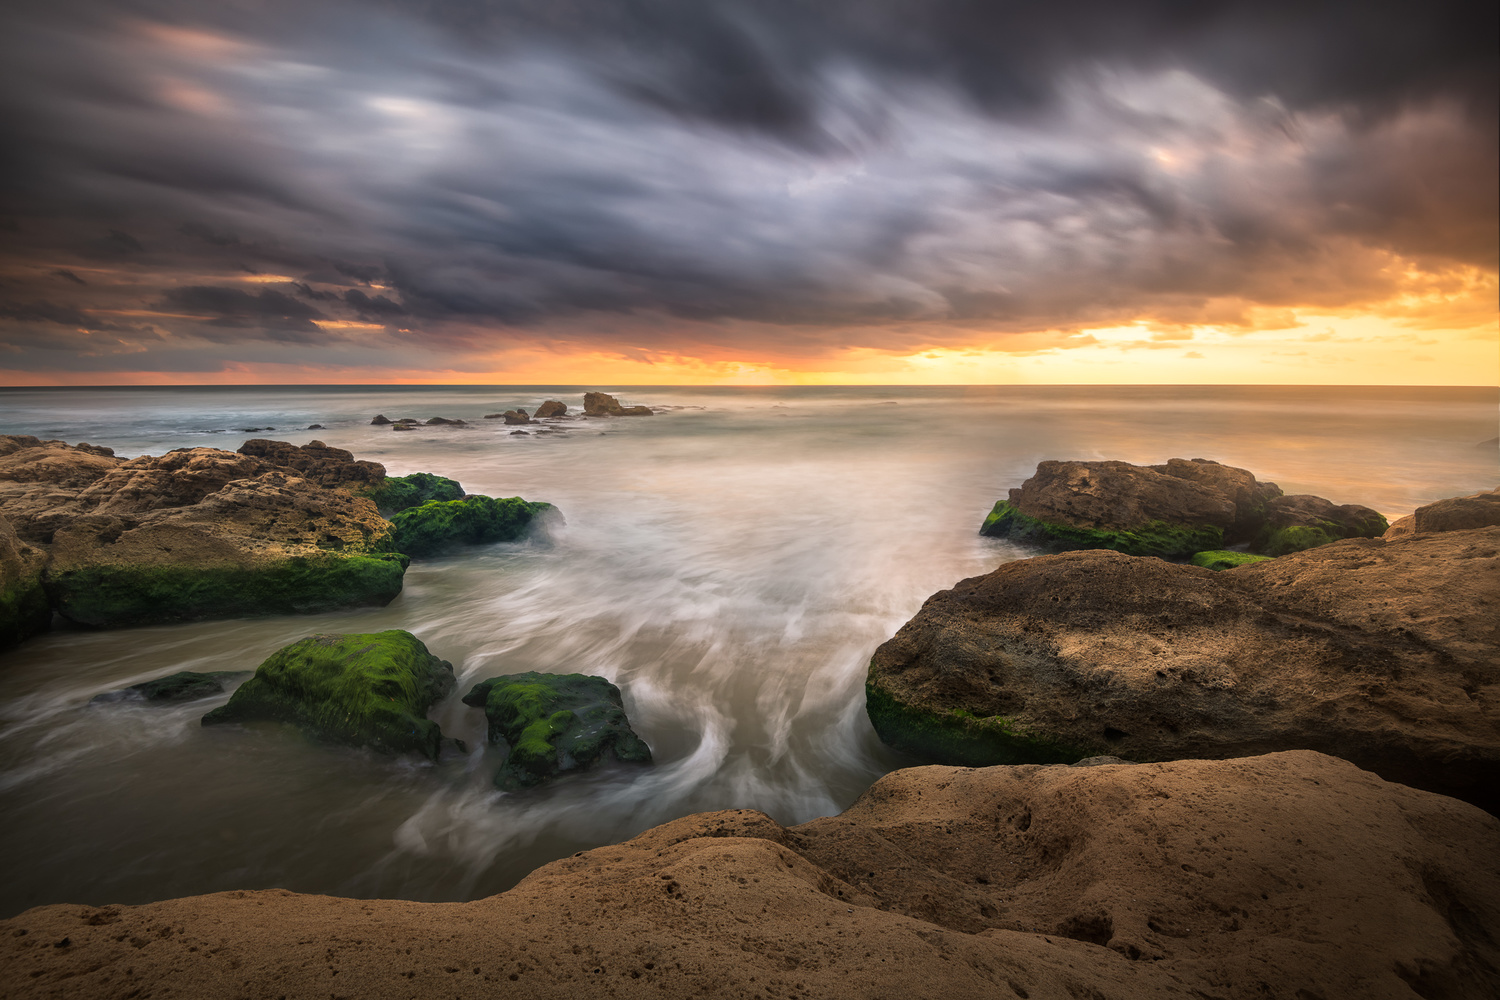 Storms End by Idan Livni